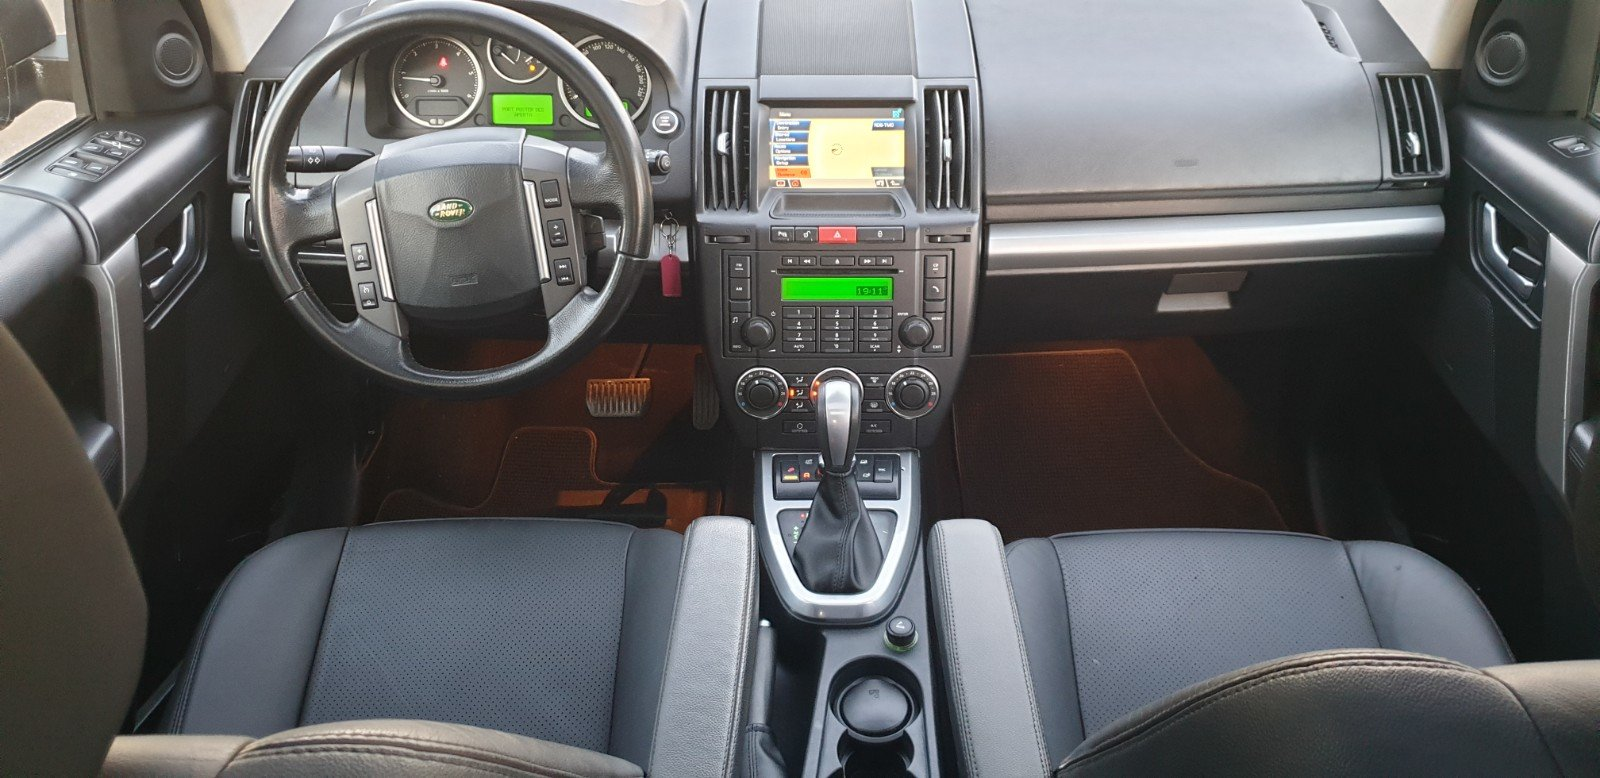 2008 LHD LAND ROVER FREELANDER 2.2 td4 LEFT HAND DRIVE For Sale (picture 5 of 6)